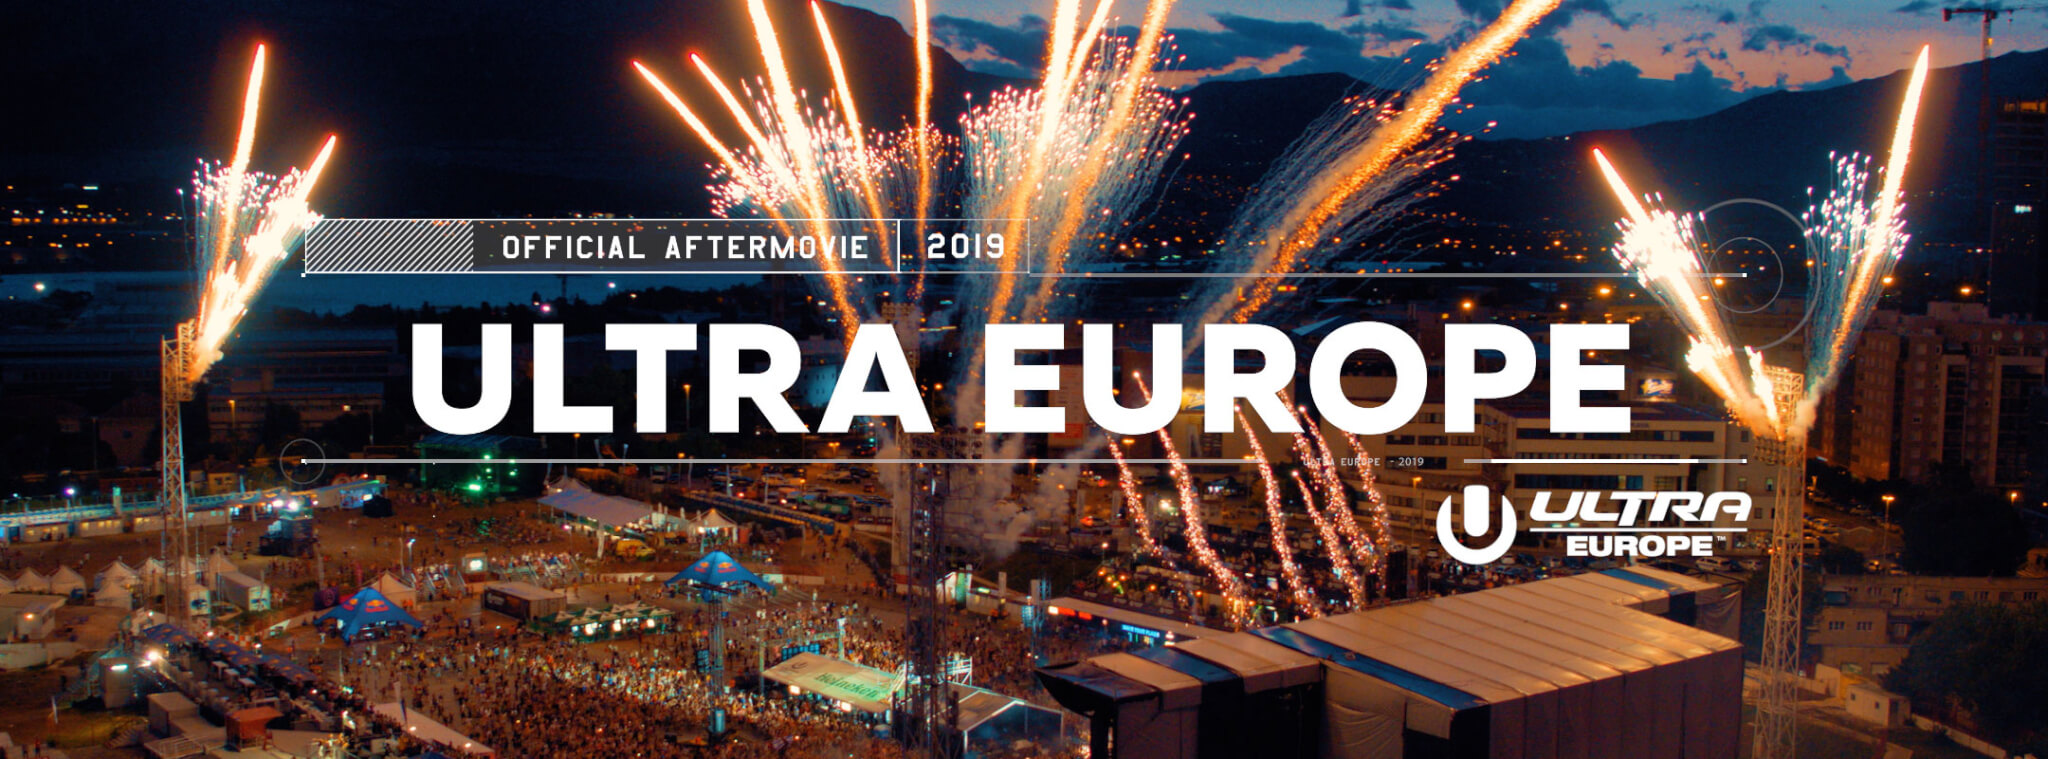 Watch the Ultra Europe 2019 Aftermovie